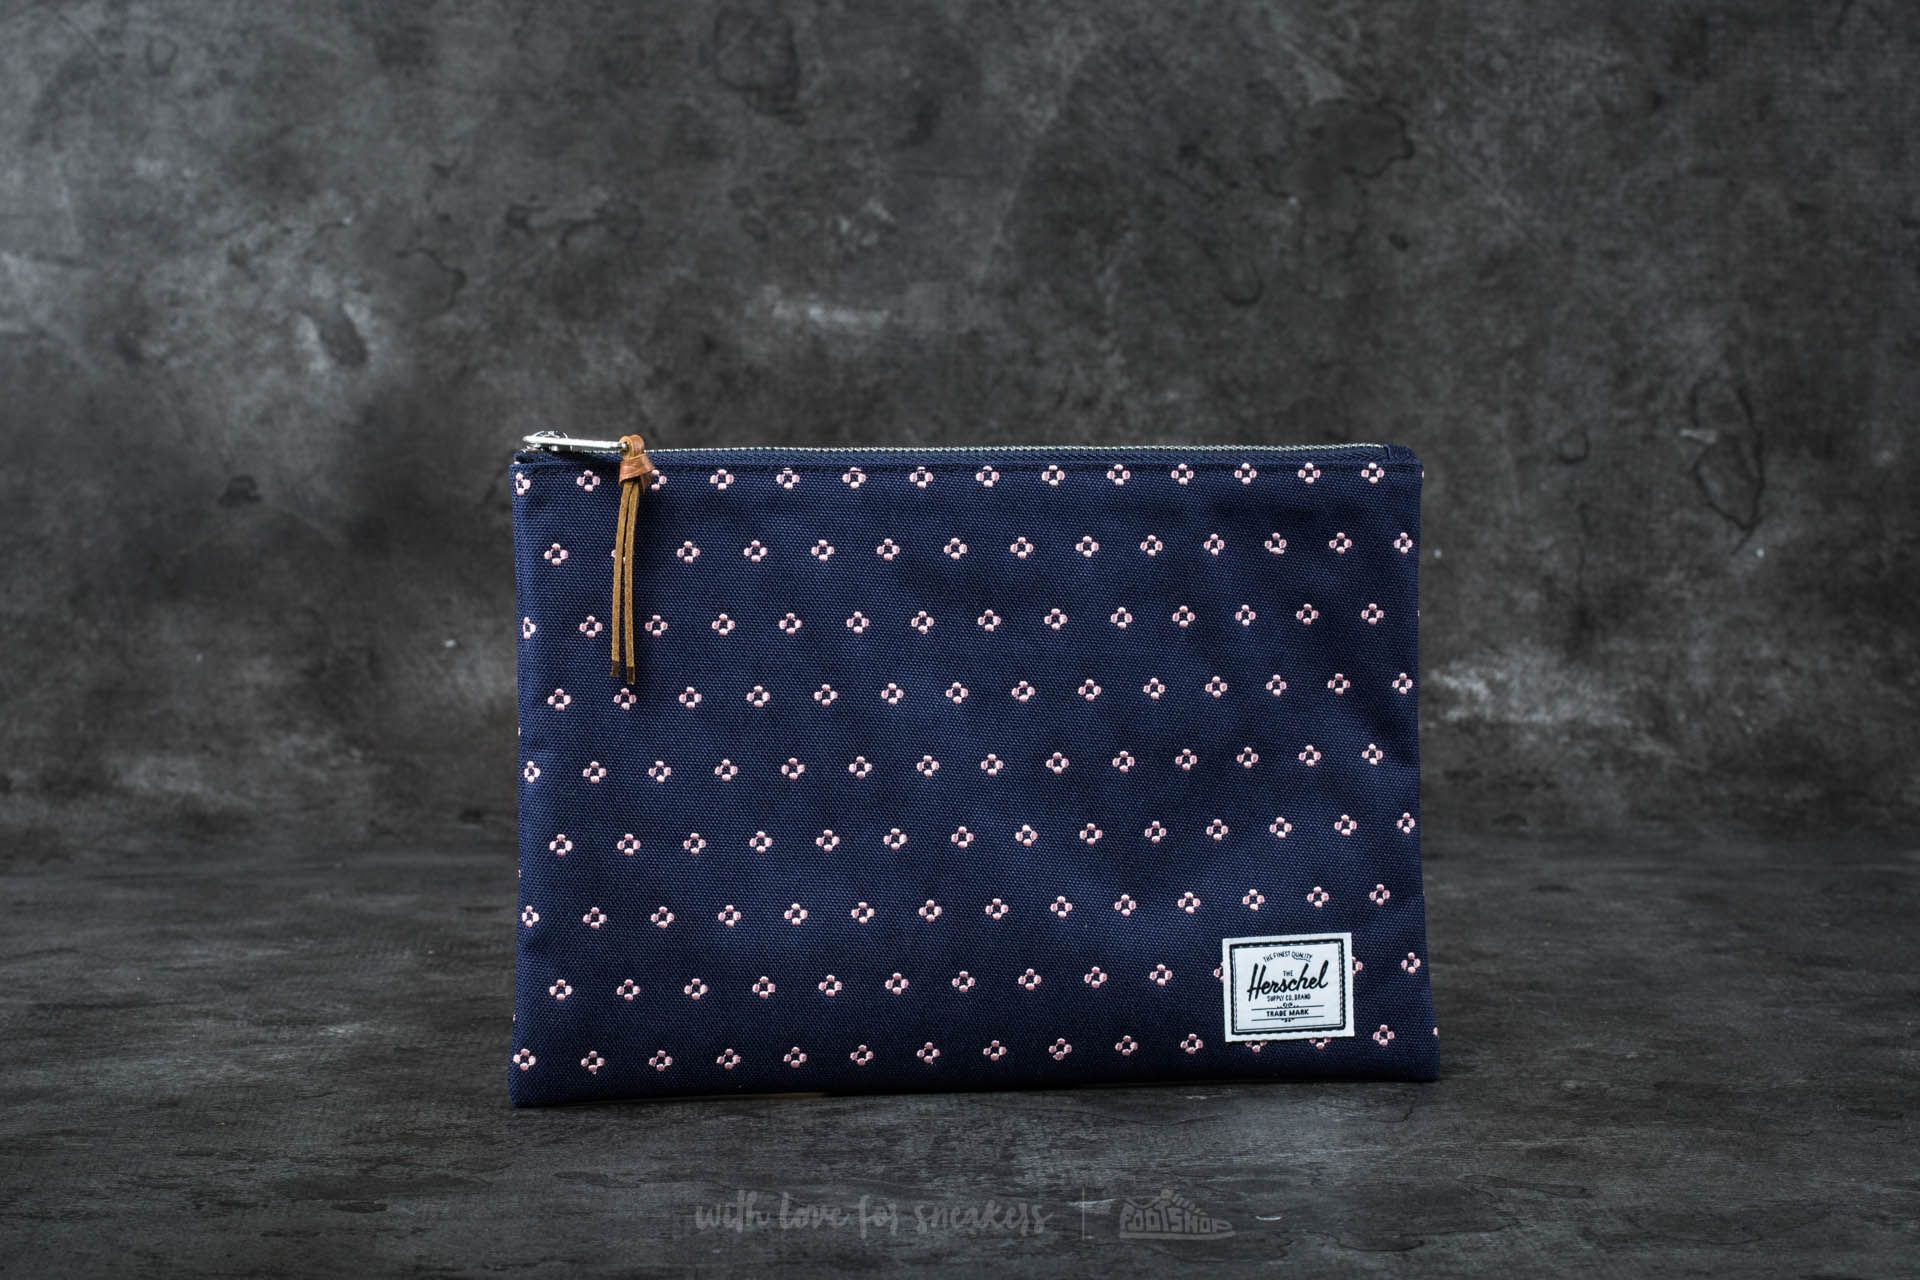 Herschel Supply Co. Network Pouch Peacot/ Apricot Blush Dots - 16569